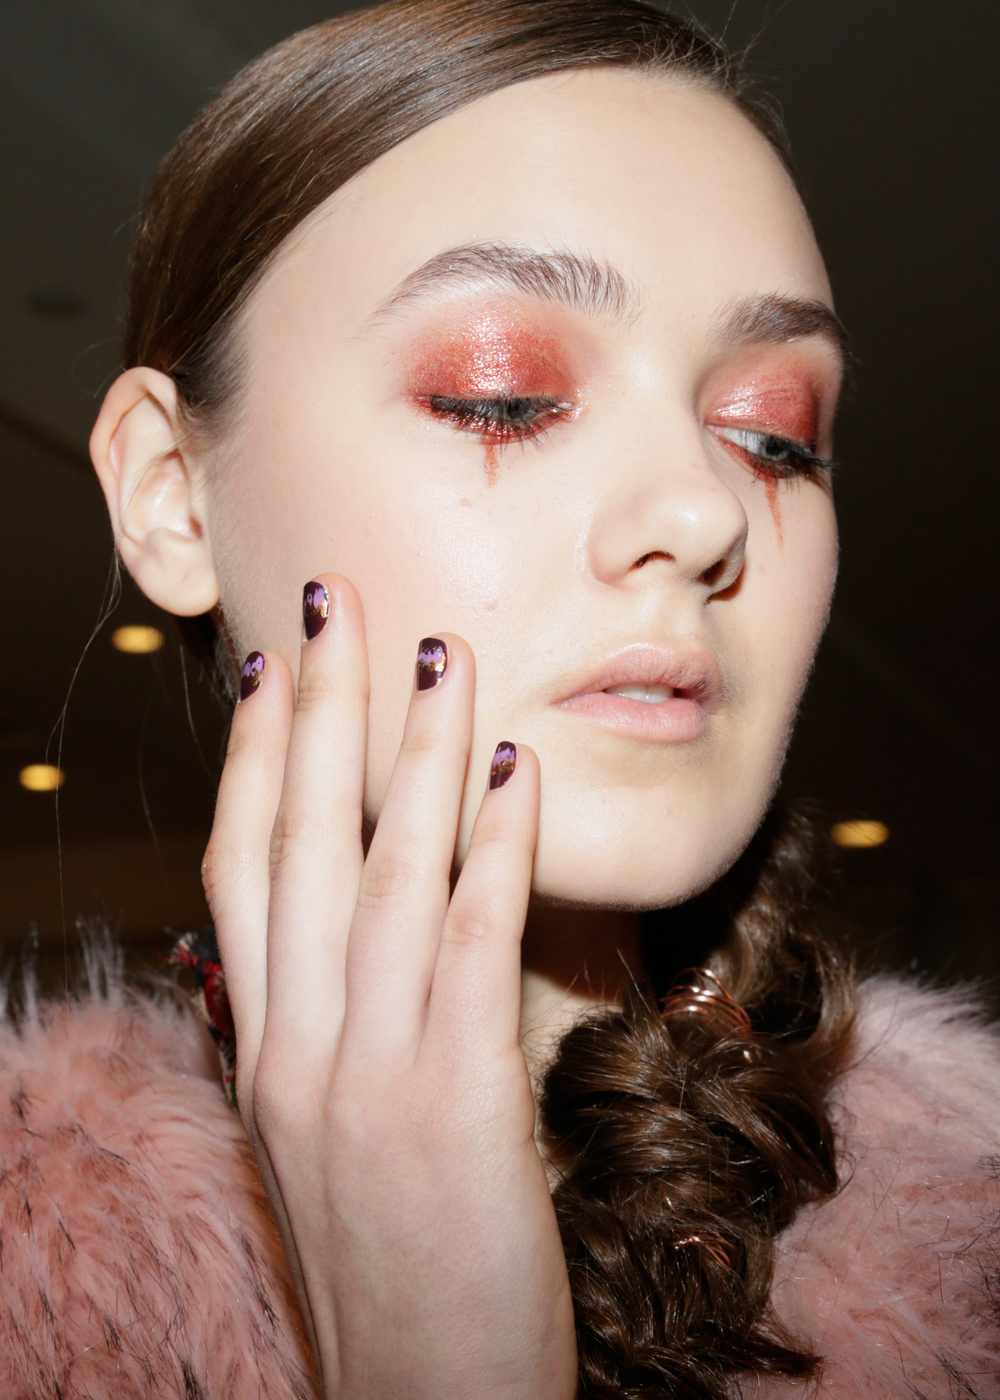 <p>Essie for Christian Siriano. <em>Carissa Lancaster @carissalancaster for The Nailscape</em></p>